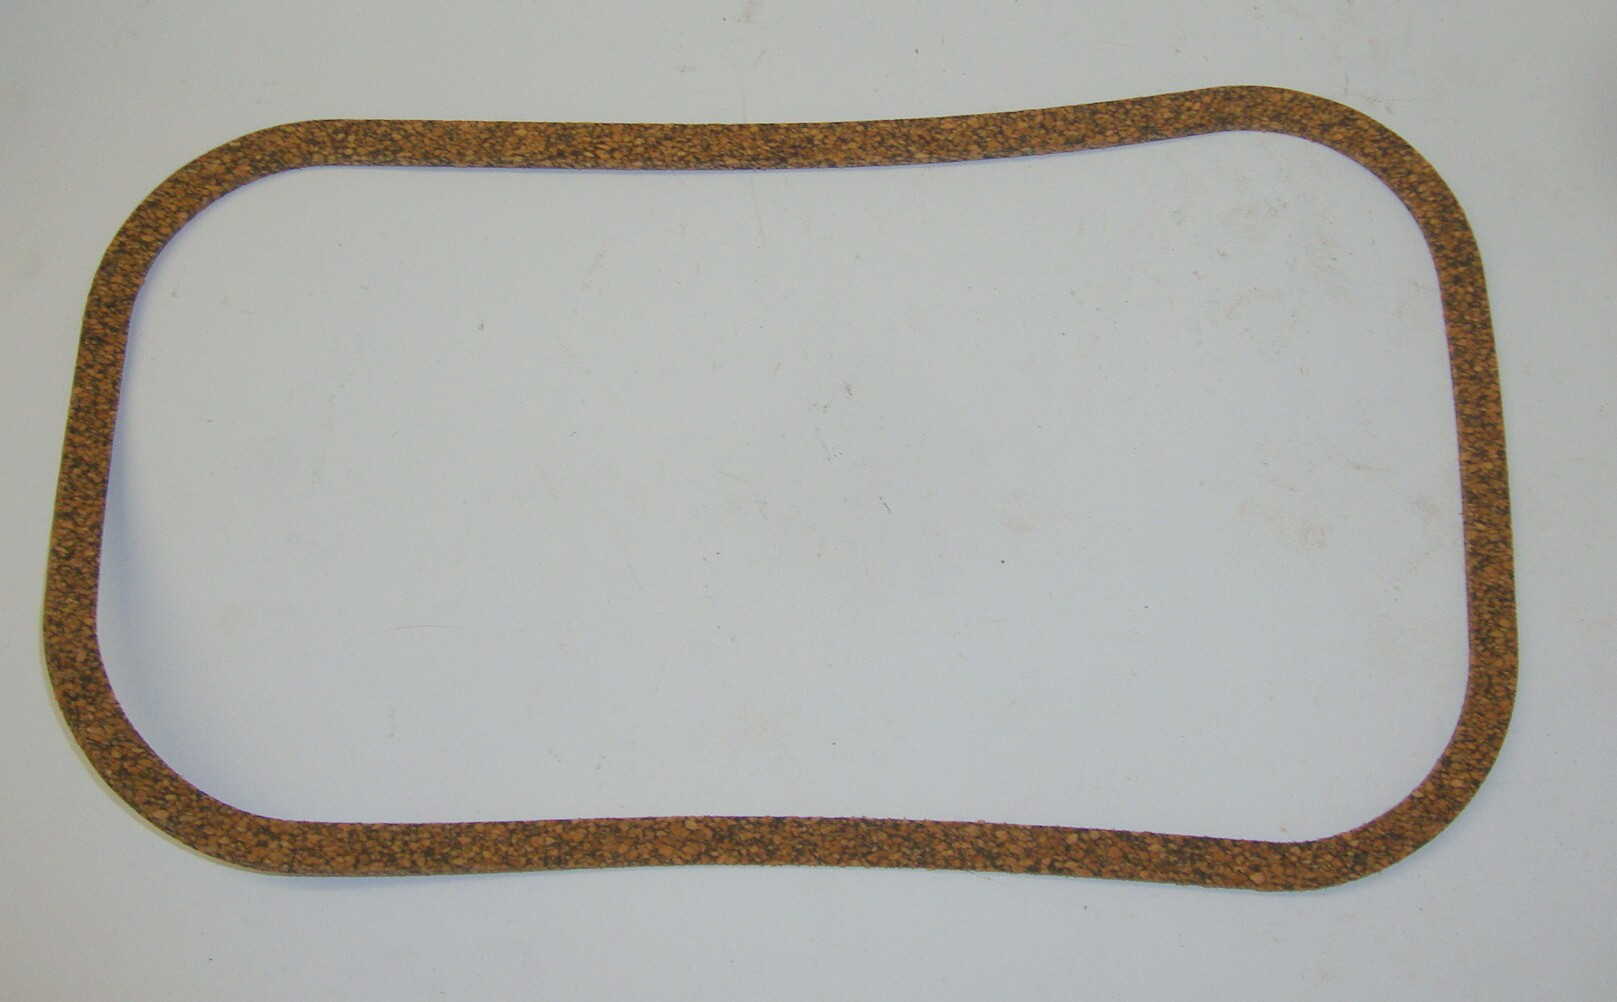 Gasket betwen tank and body, cork, Vespa 125 / 150 1952 > 1955